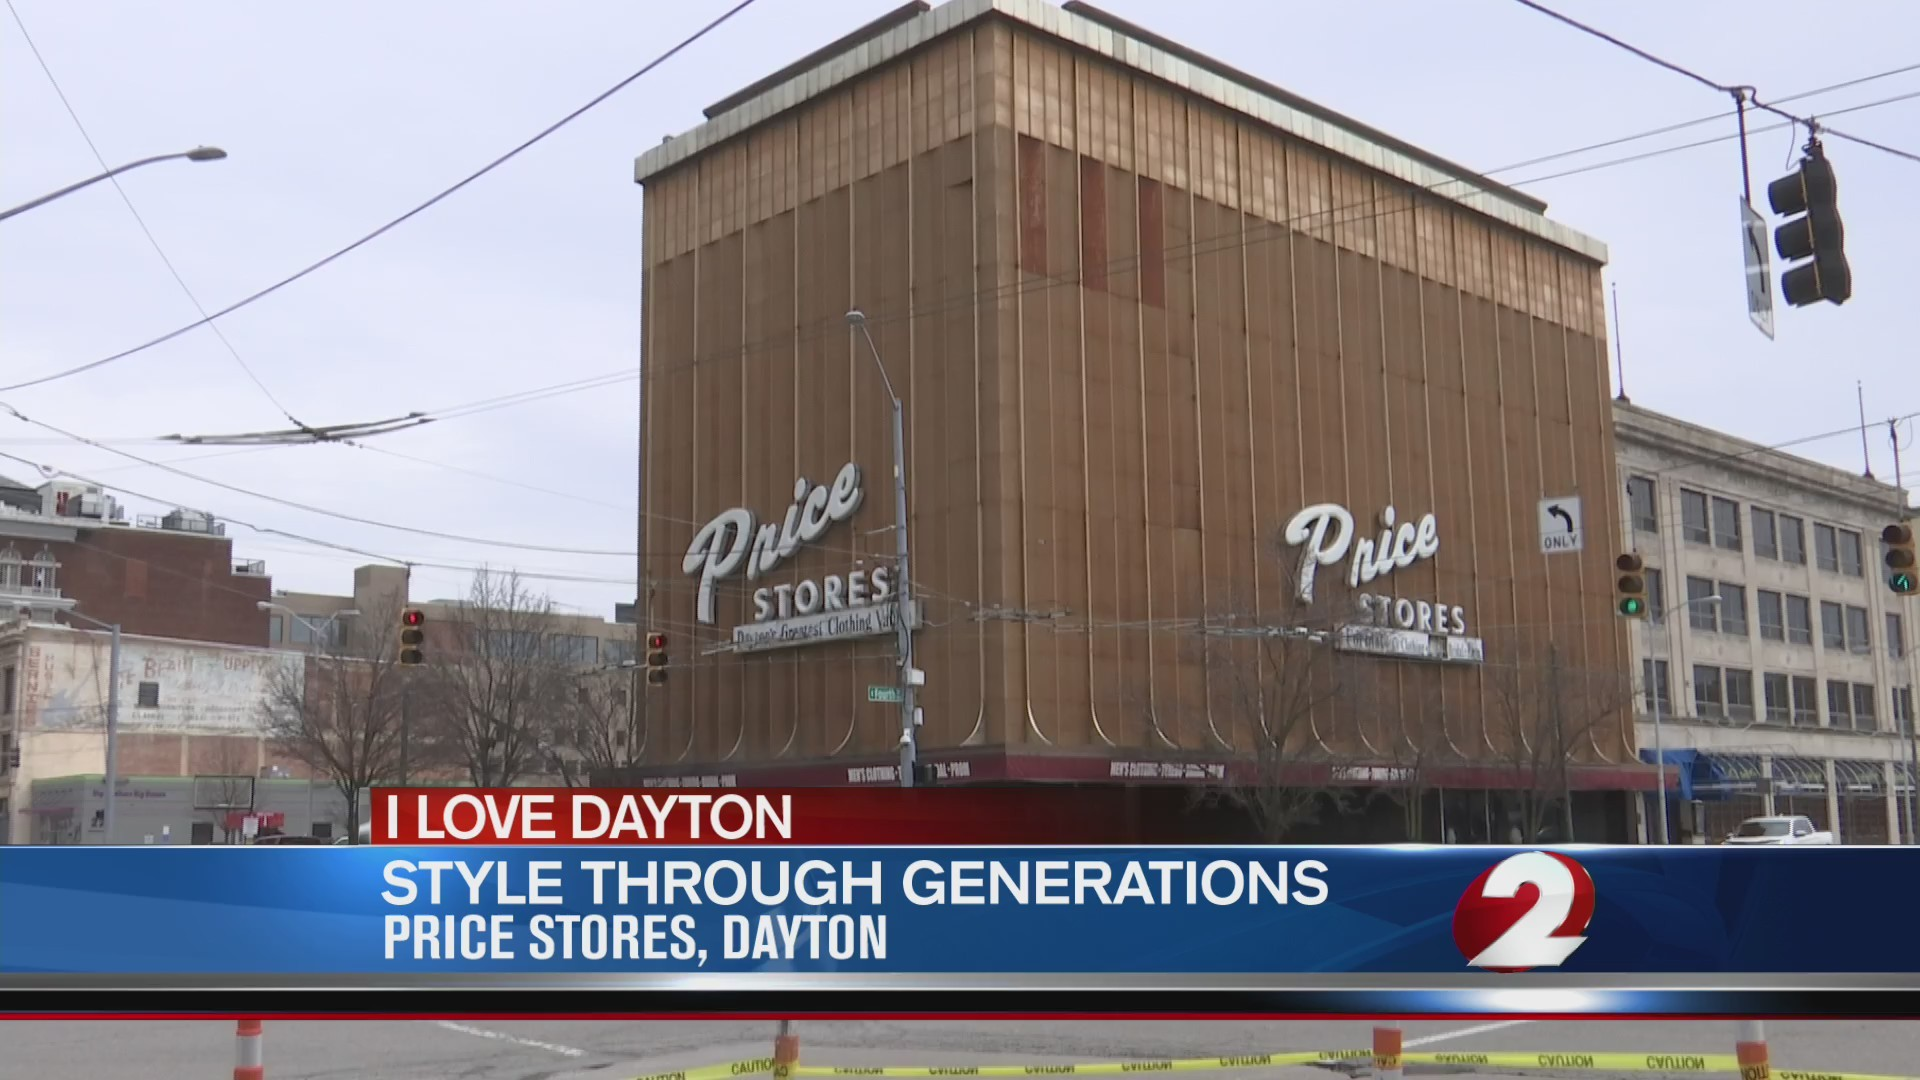 I Love Dayton: Style through generations